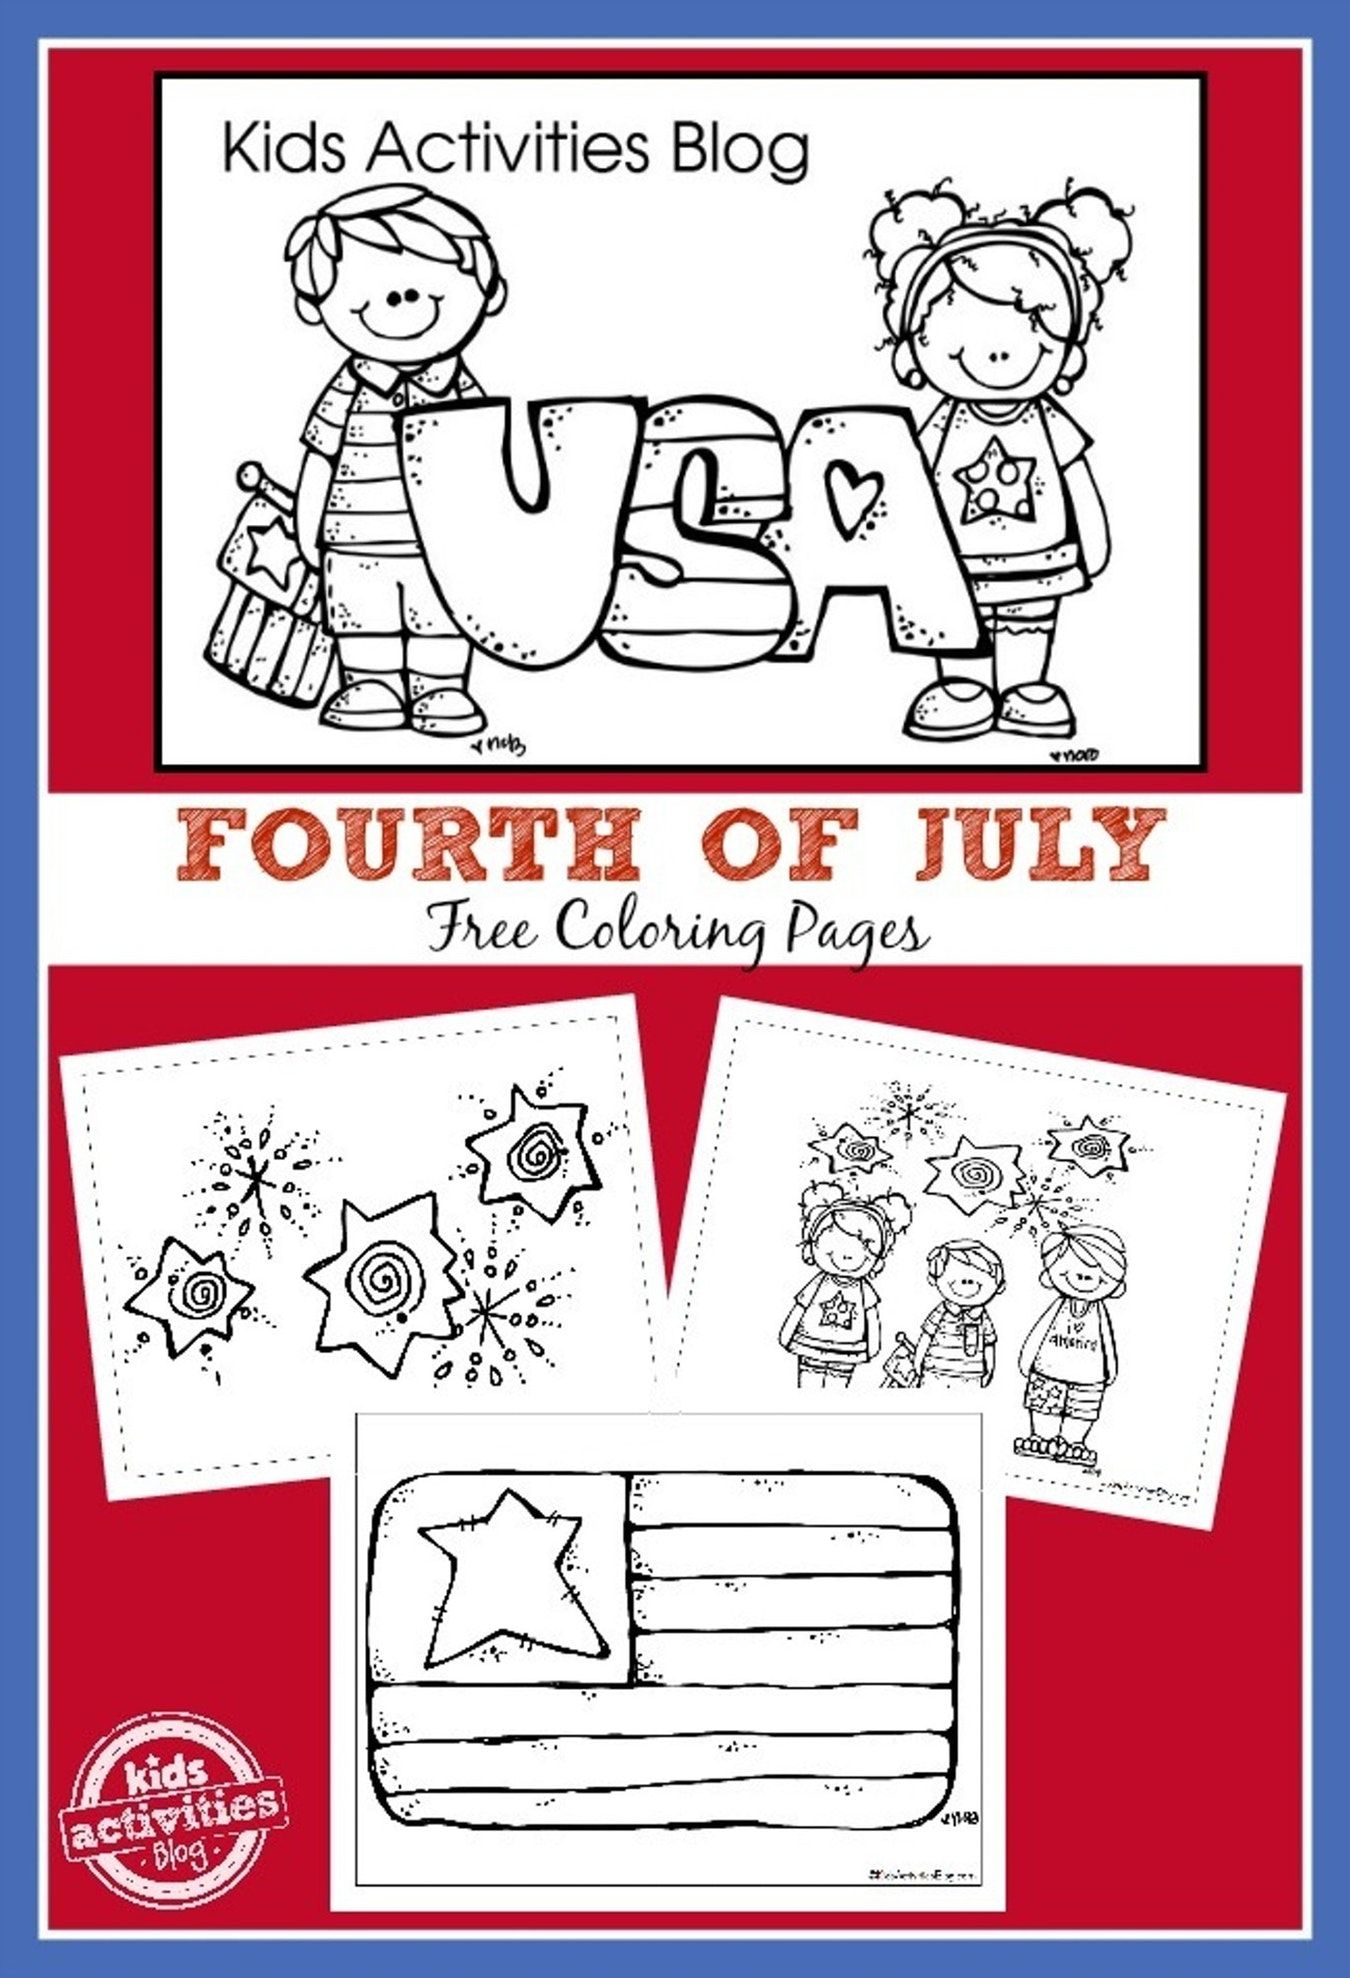 4th Of July Coloring Pages To Print At Home